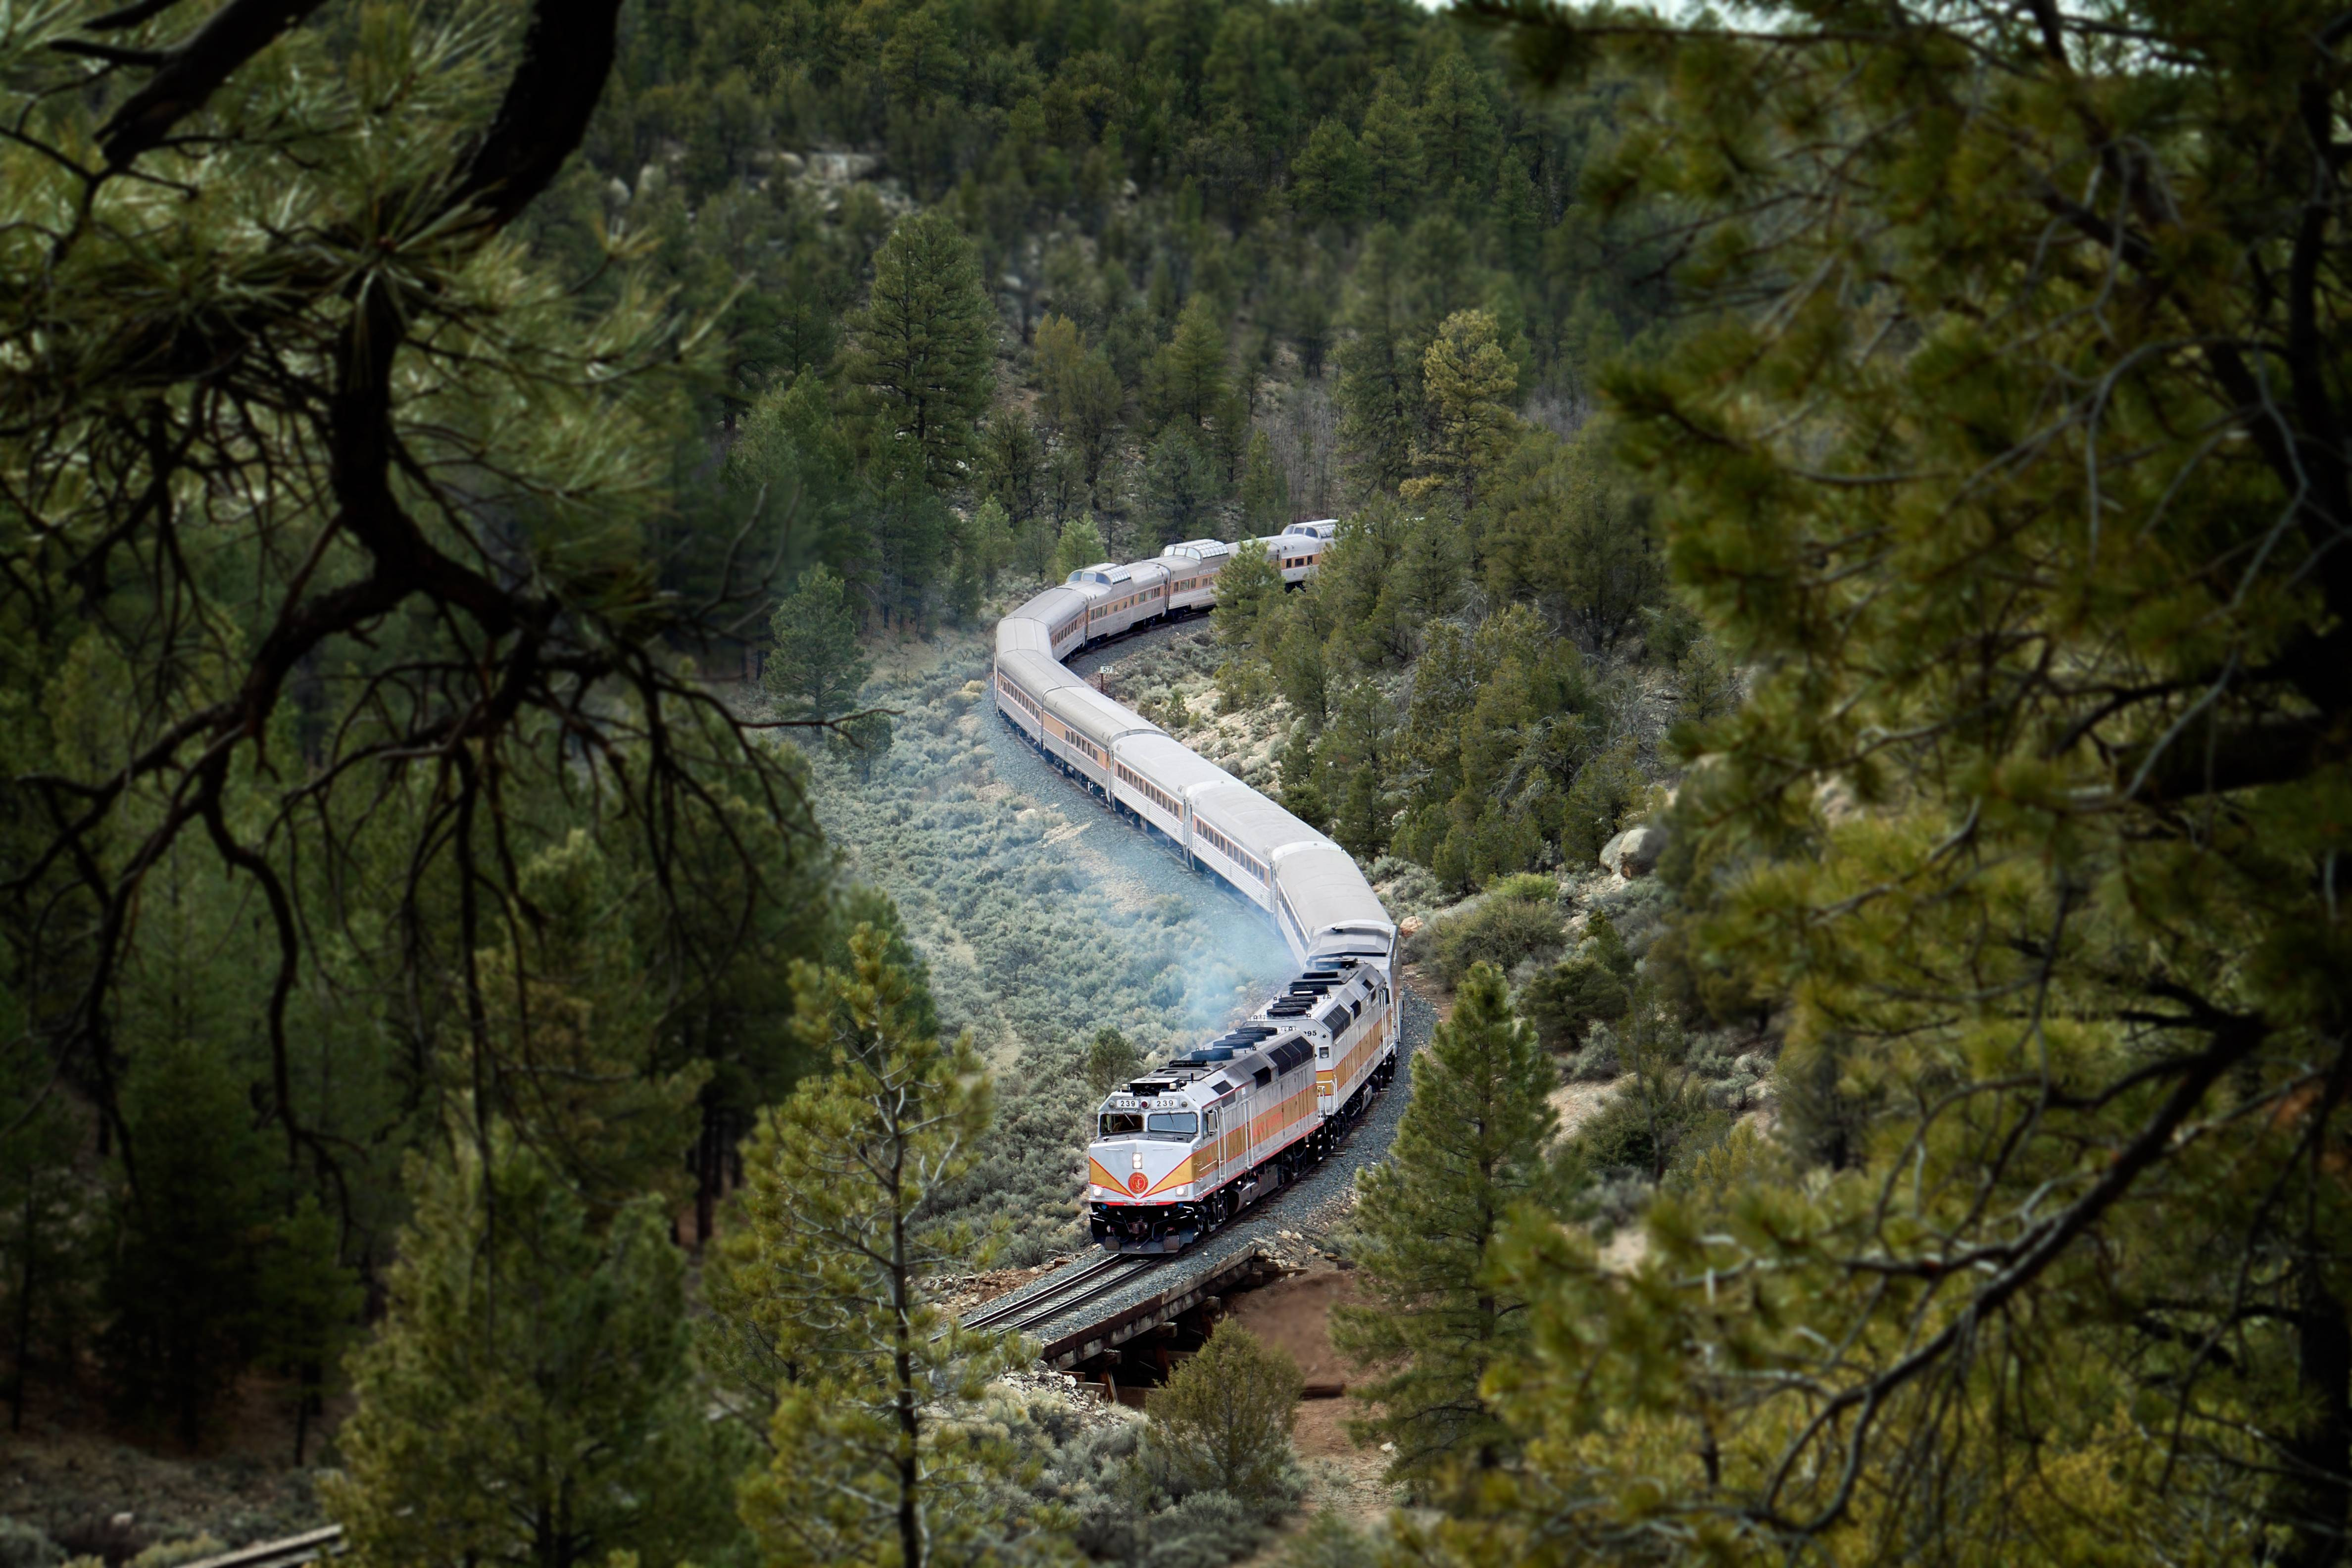 The Grand Canyon Railway, which runs between Williams, Arizona, and the Grand Canyon's South Rim, has been running since 1901, carries 225,000 people a year and offers history, sightseeing, scenery and entertainment.